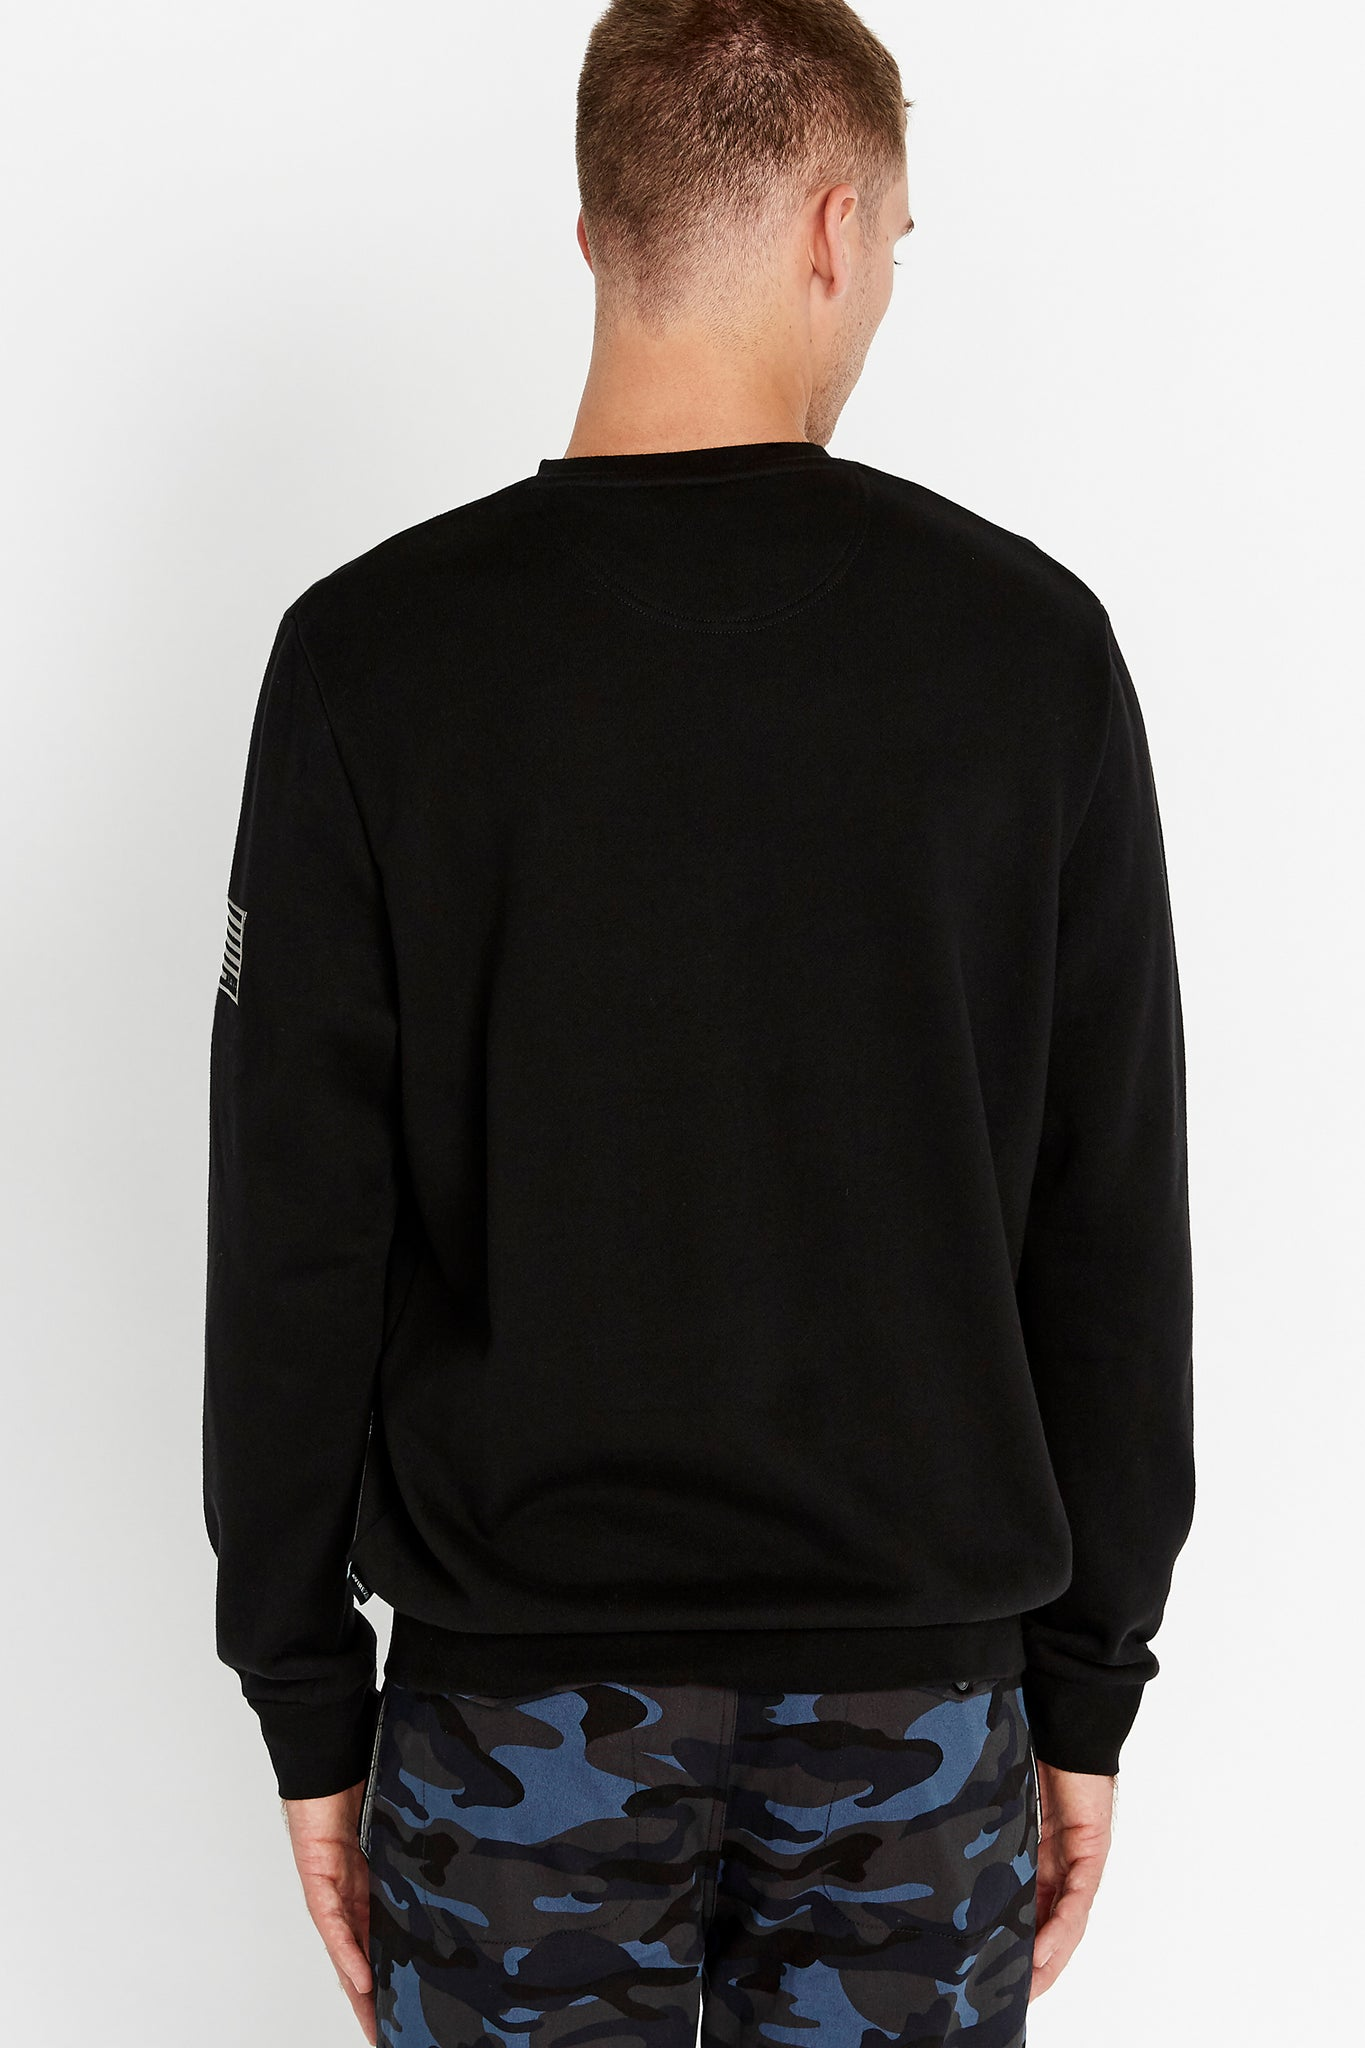 Back view of men wearing a black long sleeve crew neck sweater